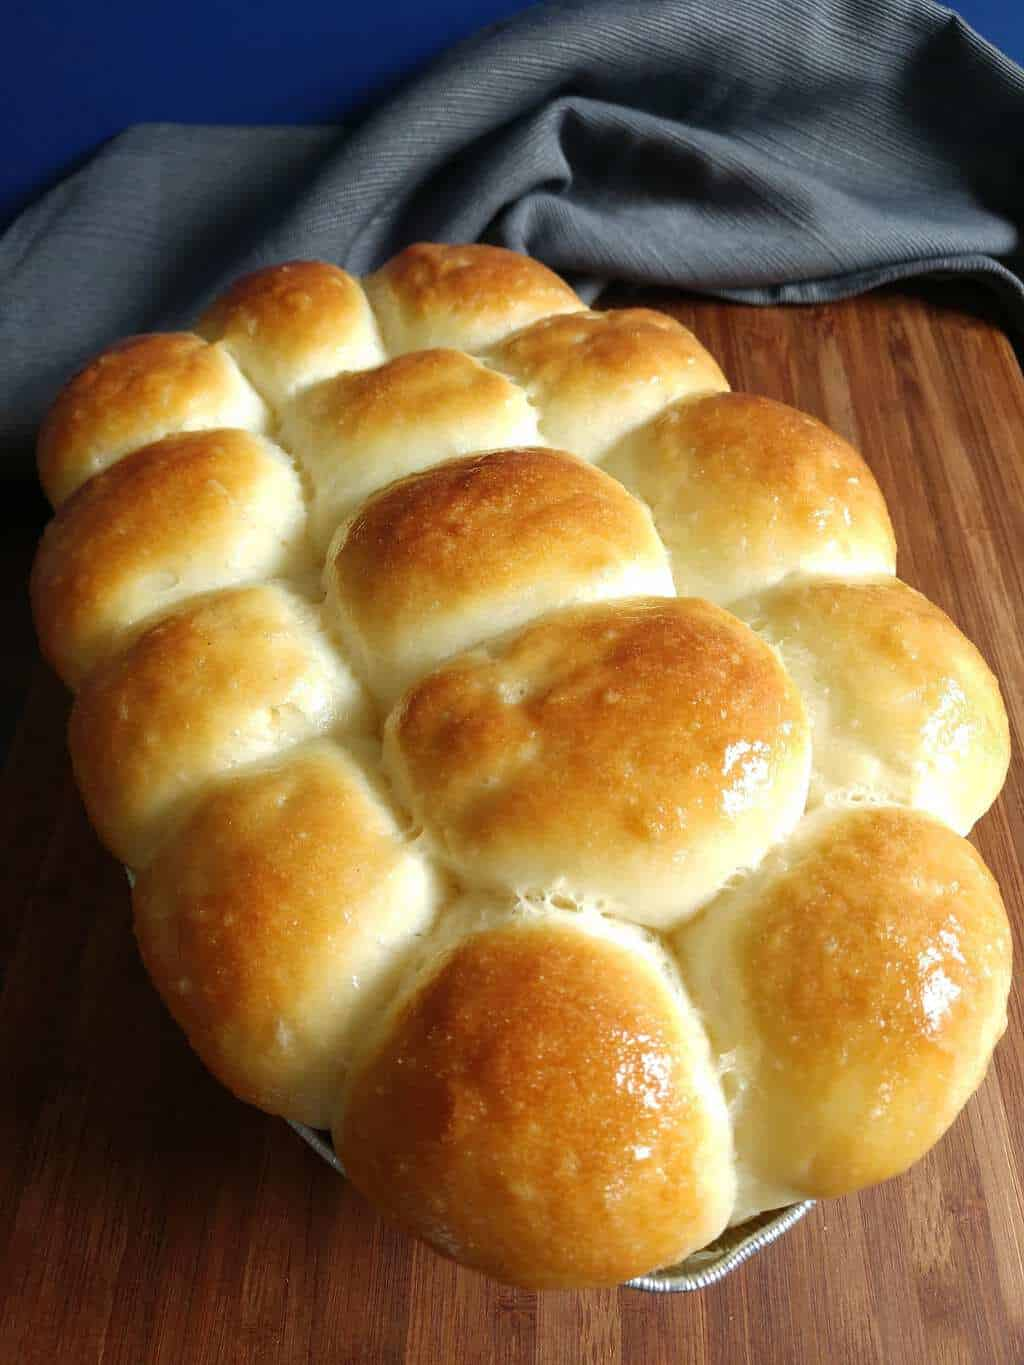 Baked dinner rolls in baking pan, topped with melted butter.